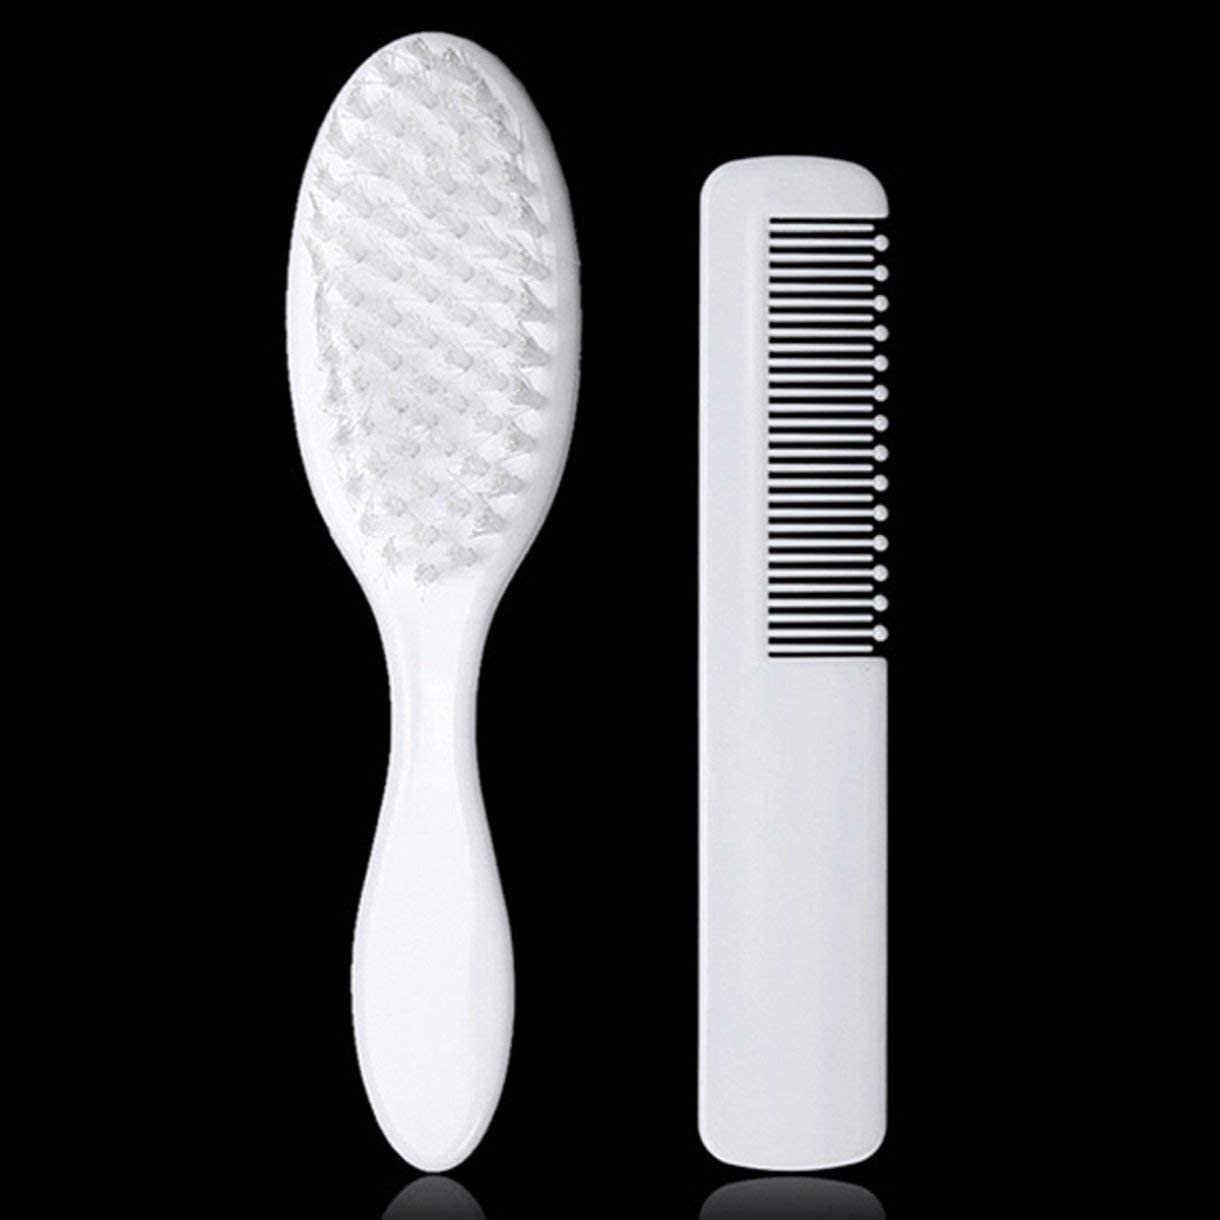 fengz Baby Hair Brush and Comb Set for Newborns Toddlers Infant Safety Healthcare【K】